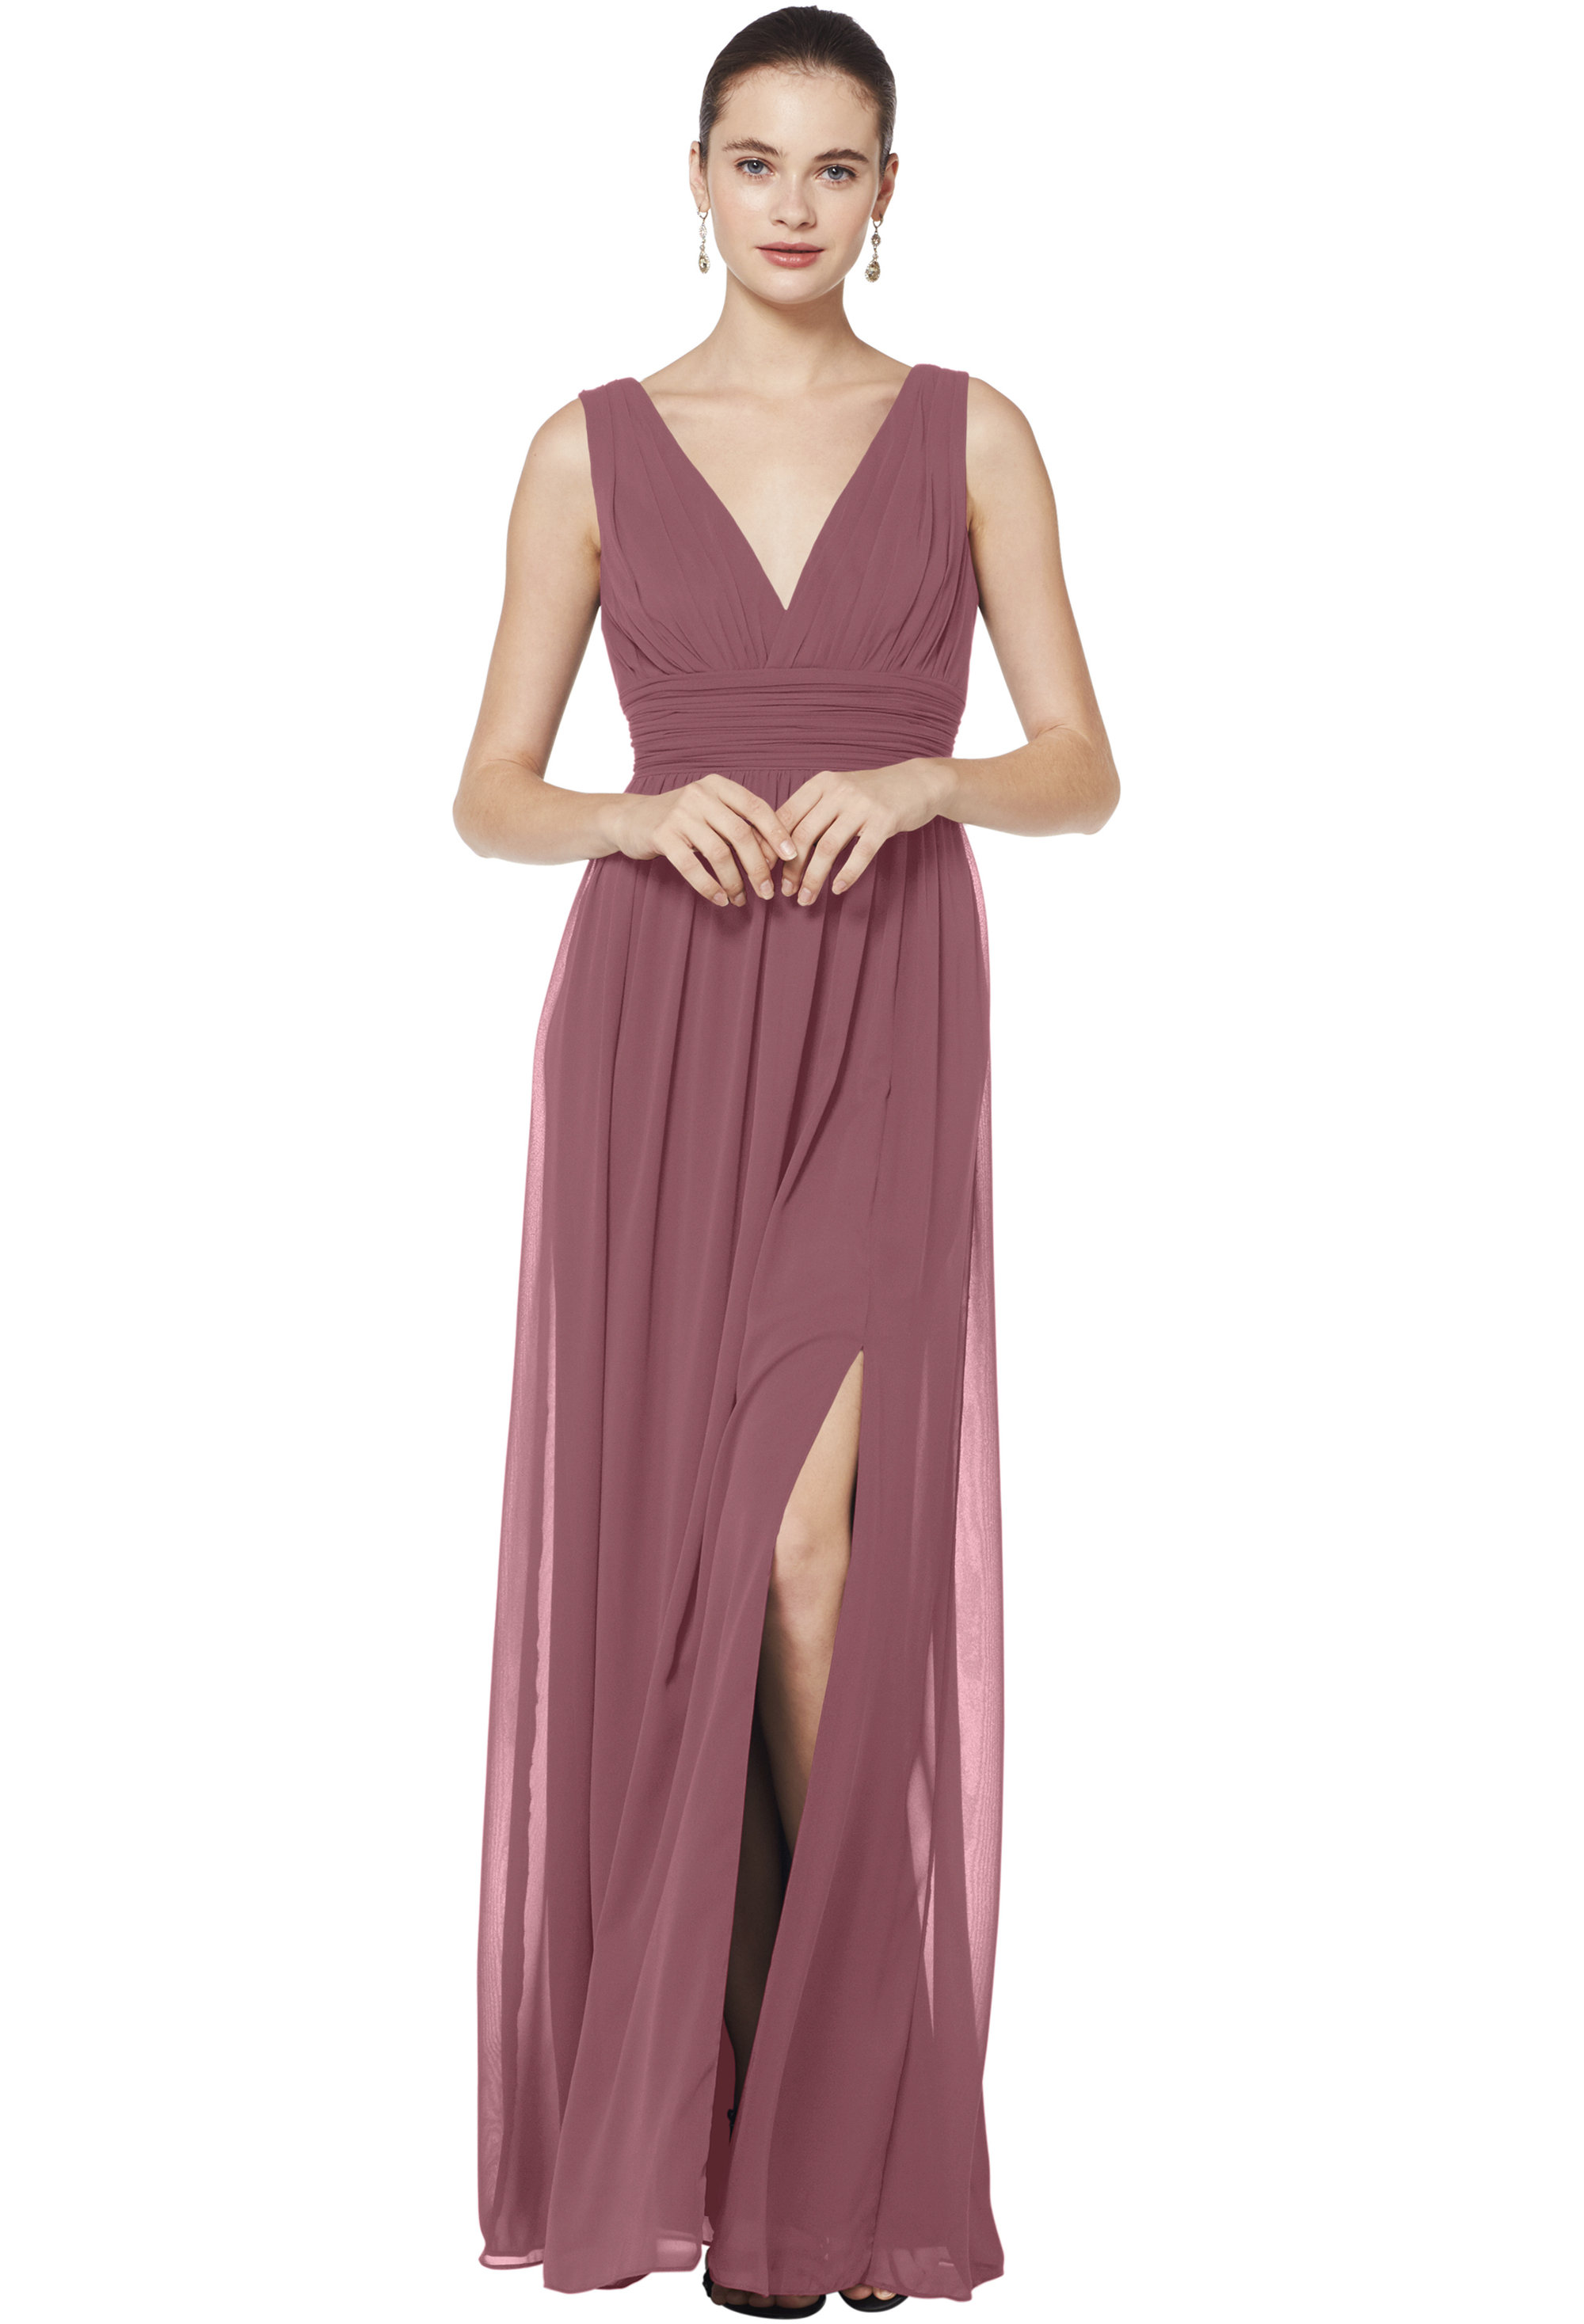 Bill Levkoff ROSEWOOD Chiffon Sleeveless A-line gown, $176.00 Front